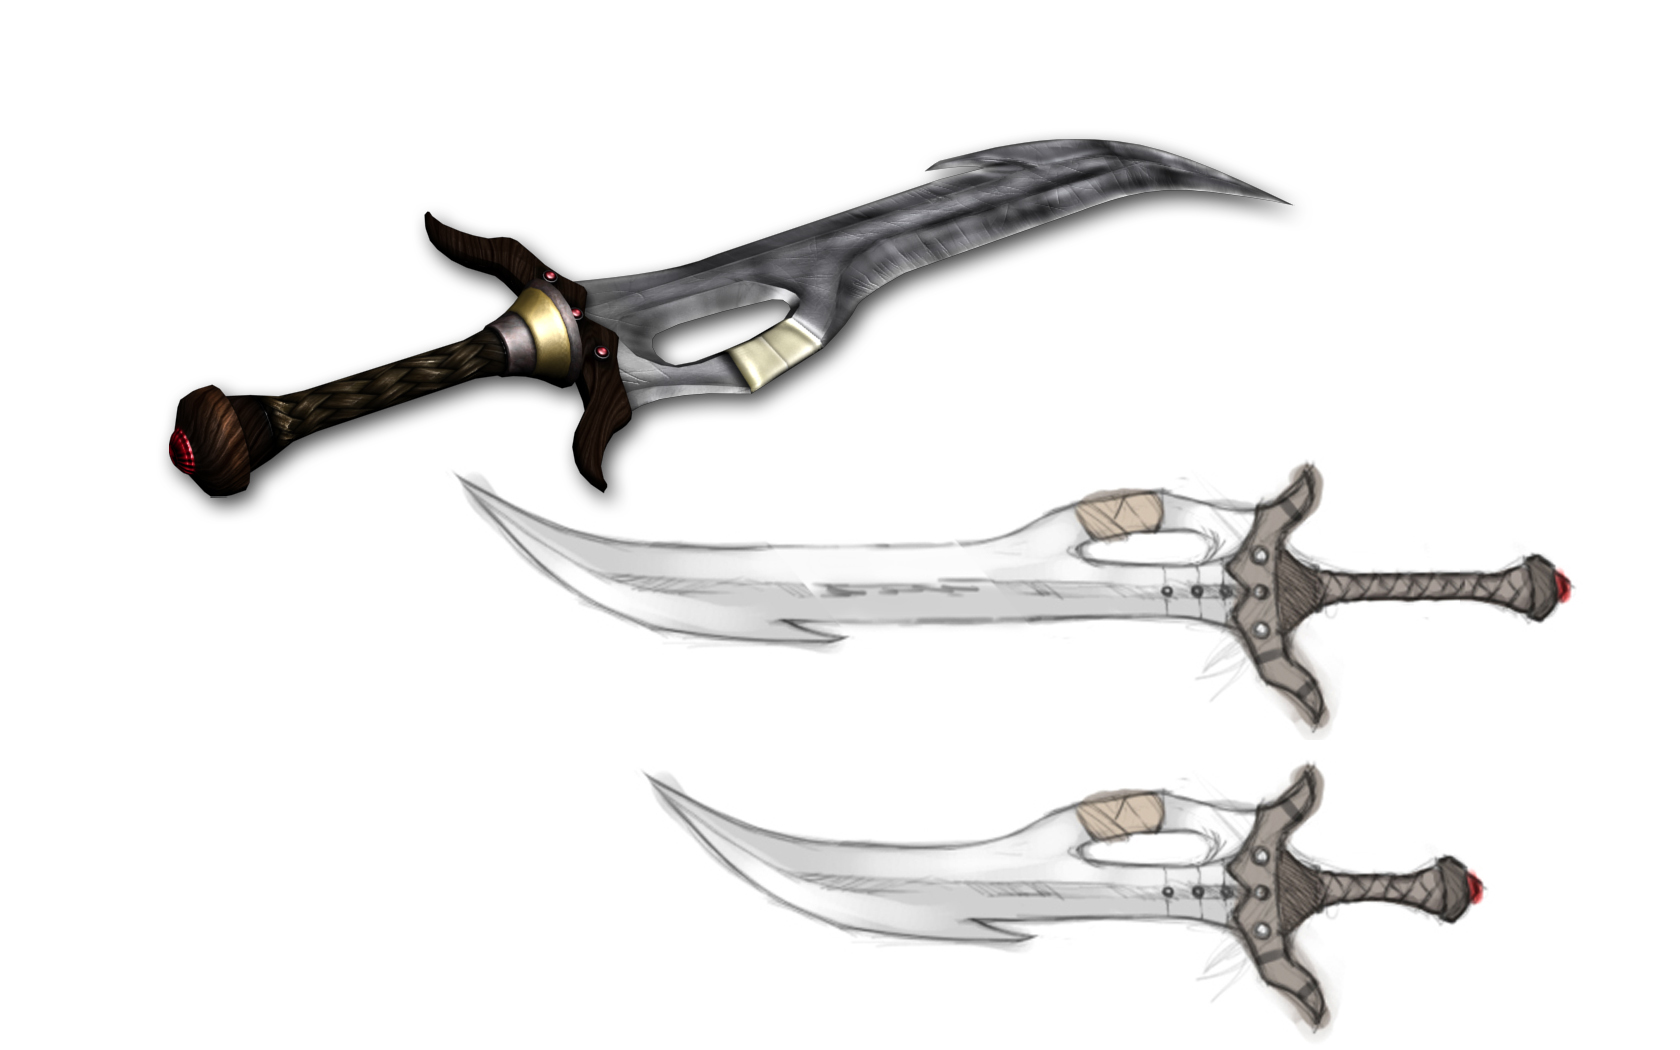 Weapon From Concept To Complete Image